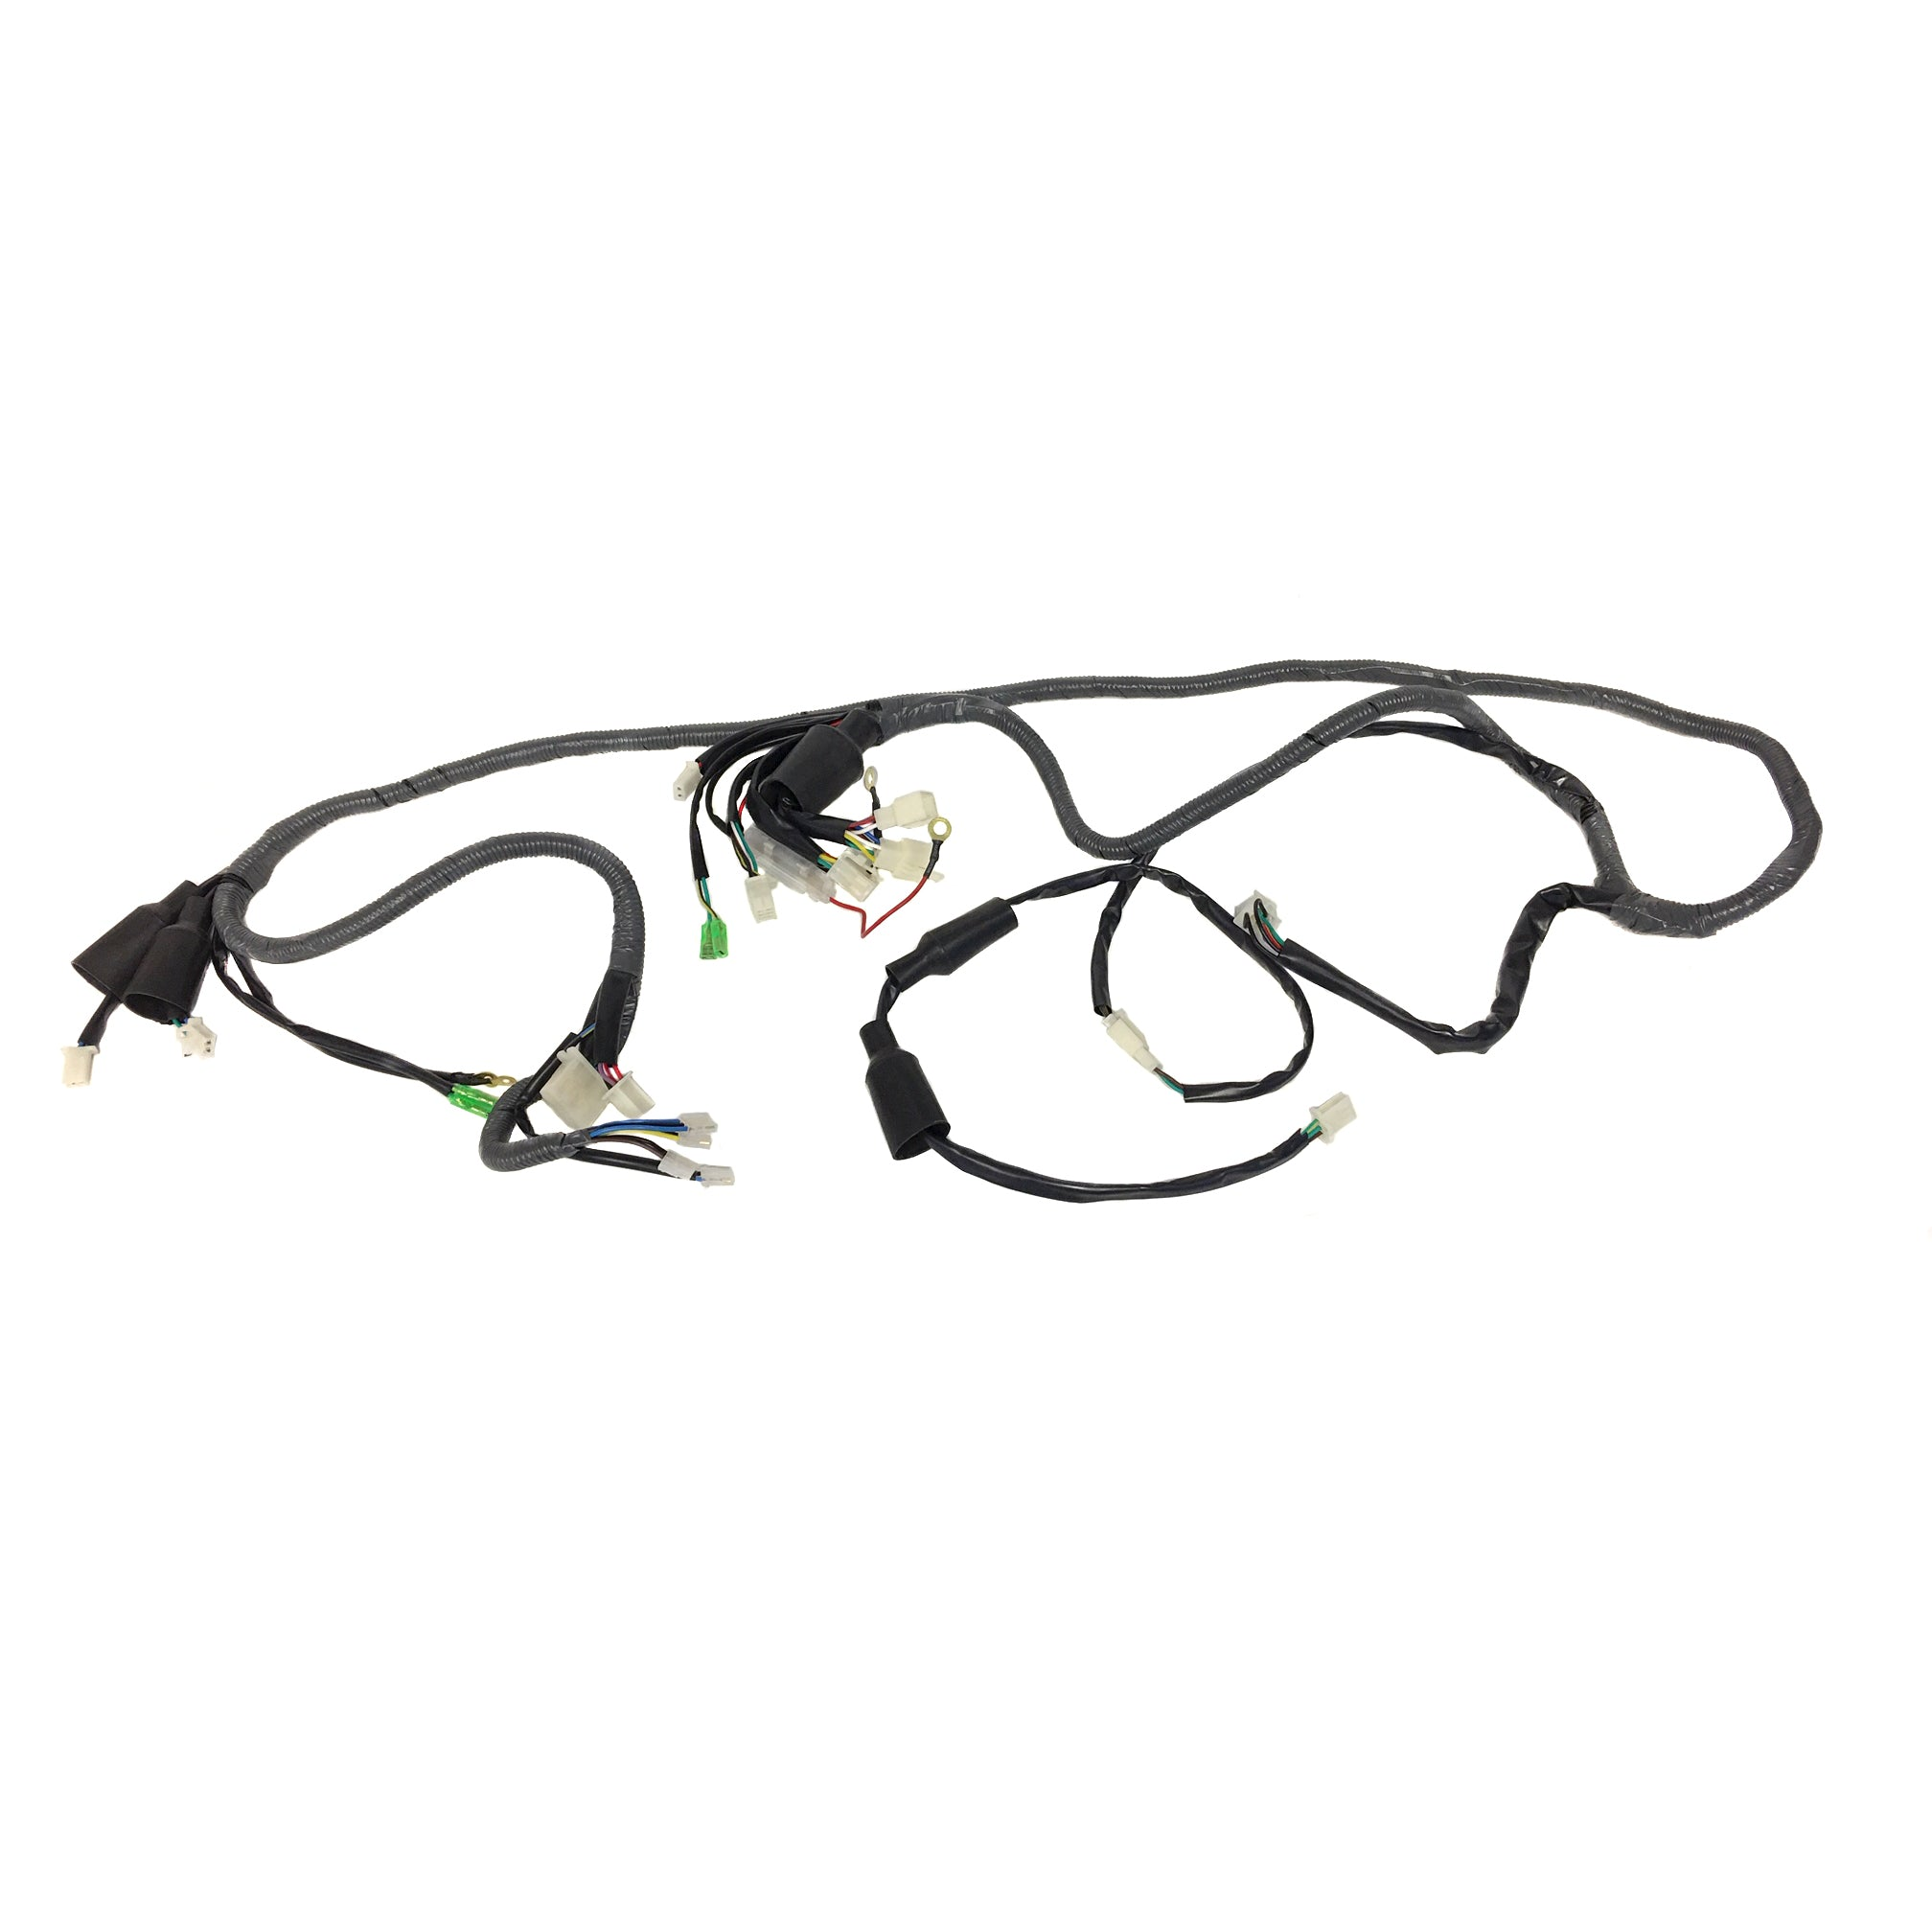 Electrical Wiring Harness for Tao Tao 110cc GK110 Go-Kart